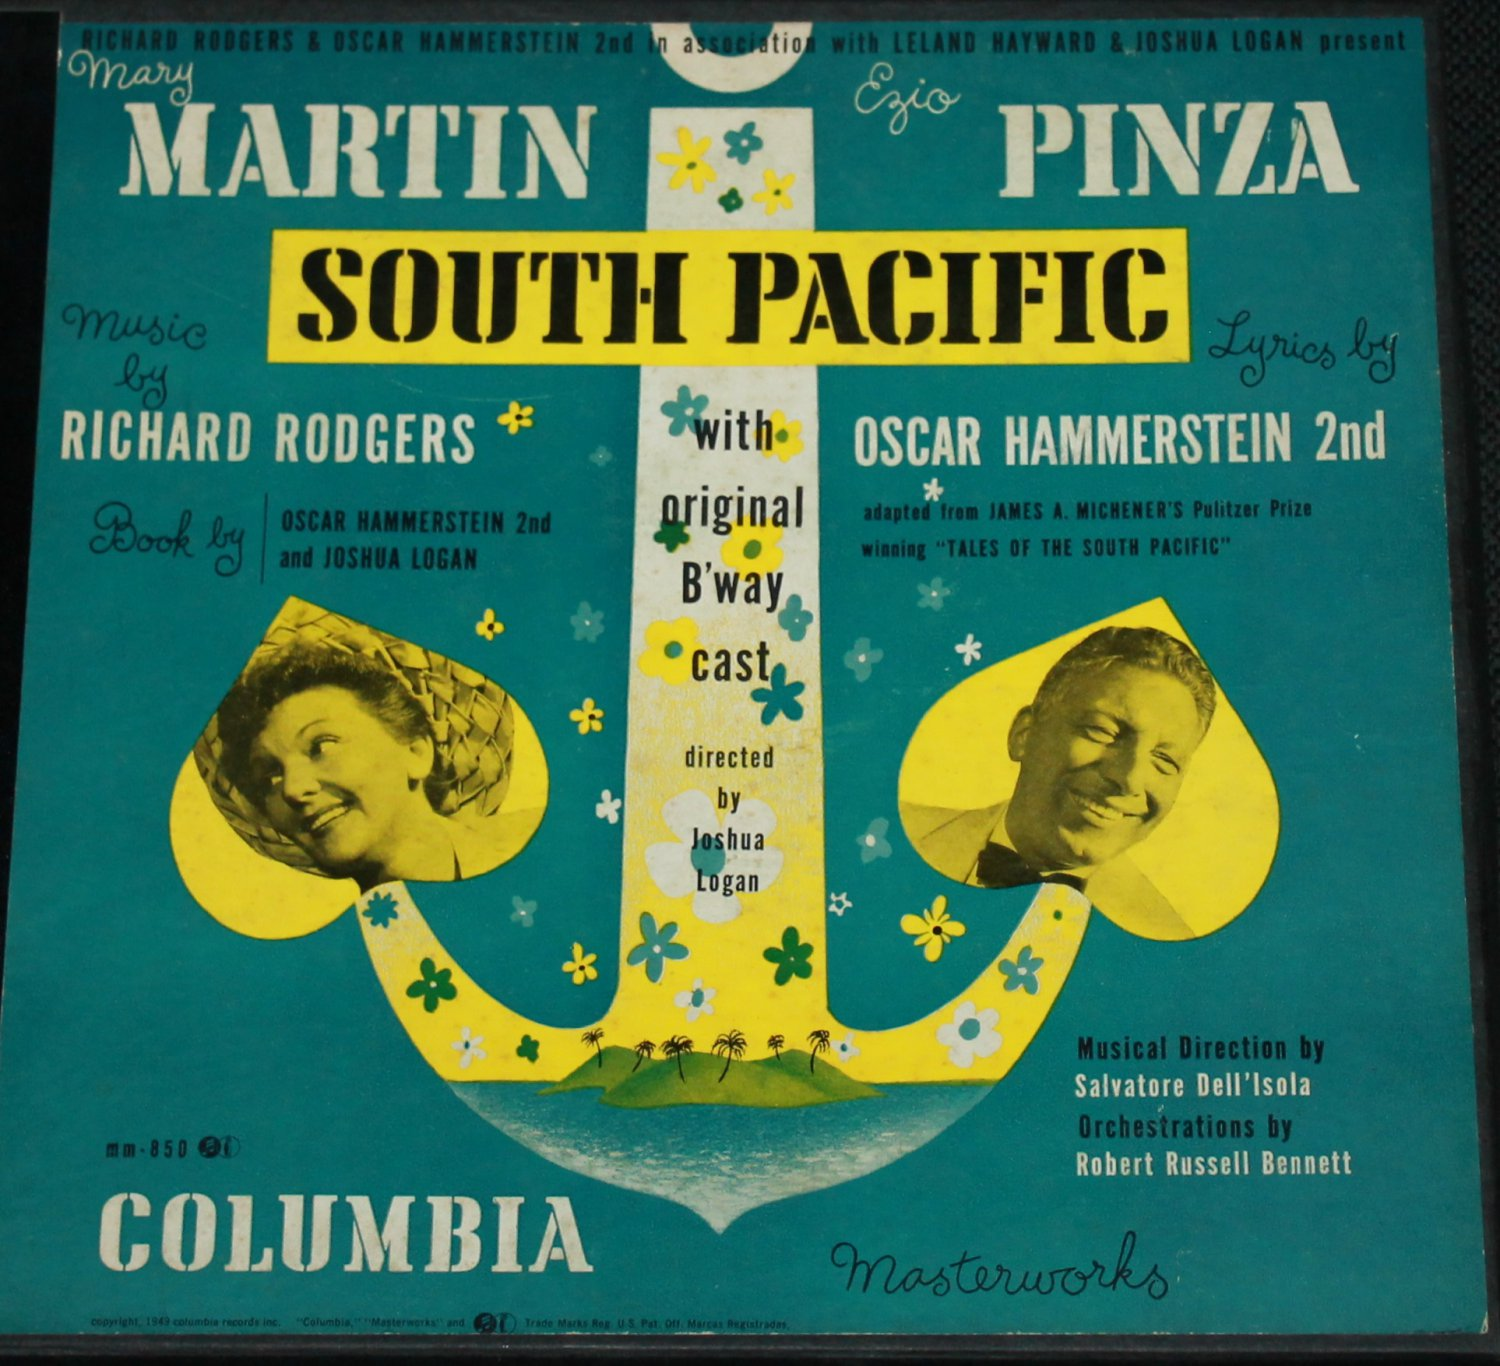 South Pacific Rodgers - Hammerstein 2nd - record box set - Columbia Masterworks Seton vinyl